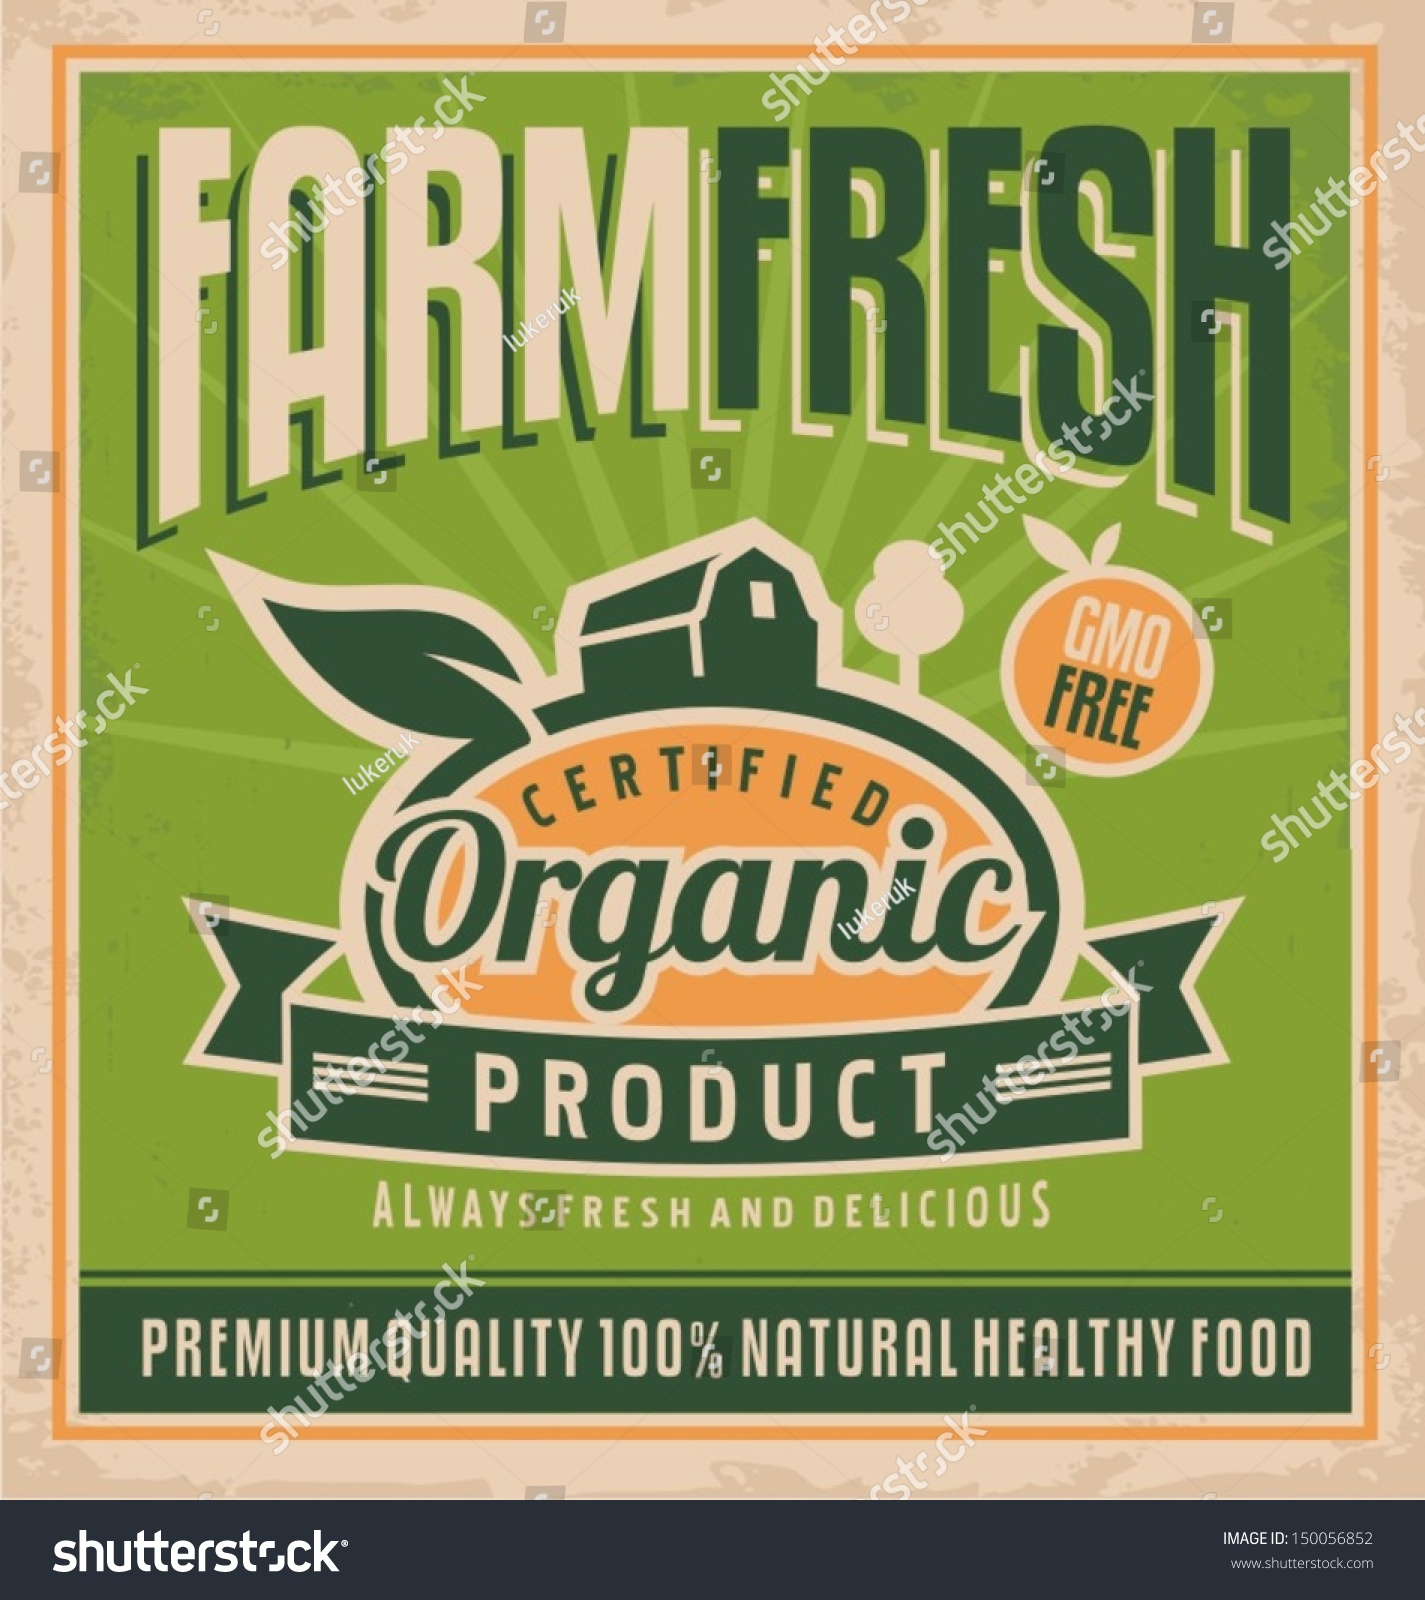 Retro farm fresh food concept. Vector design for gmo free organic products  on old paper